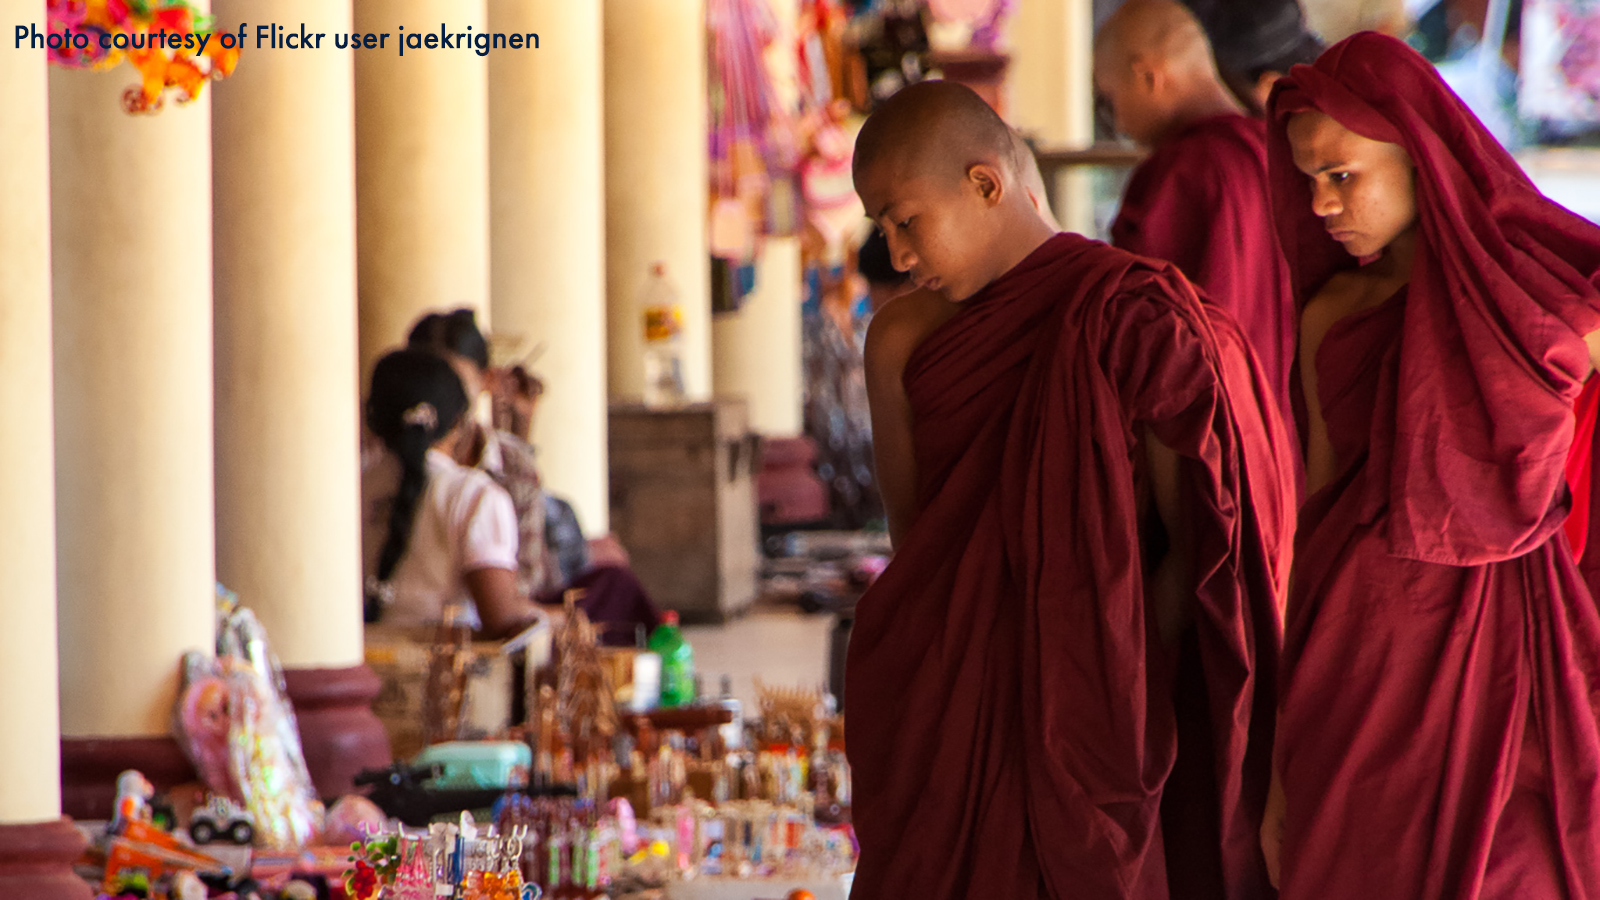 Buddhist monks in red robes looking at offerings as they walk